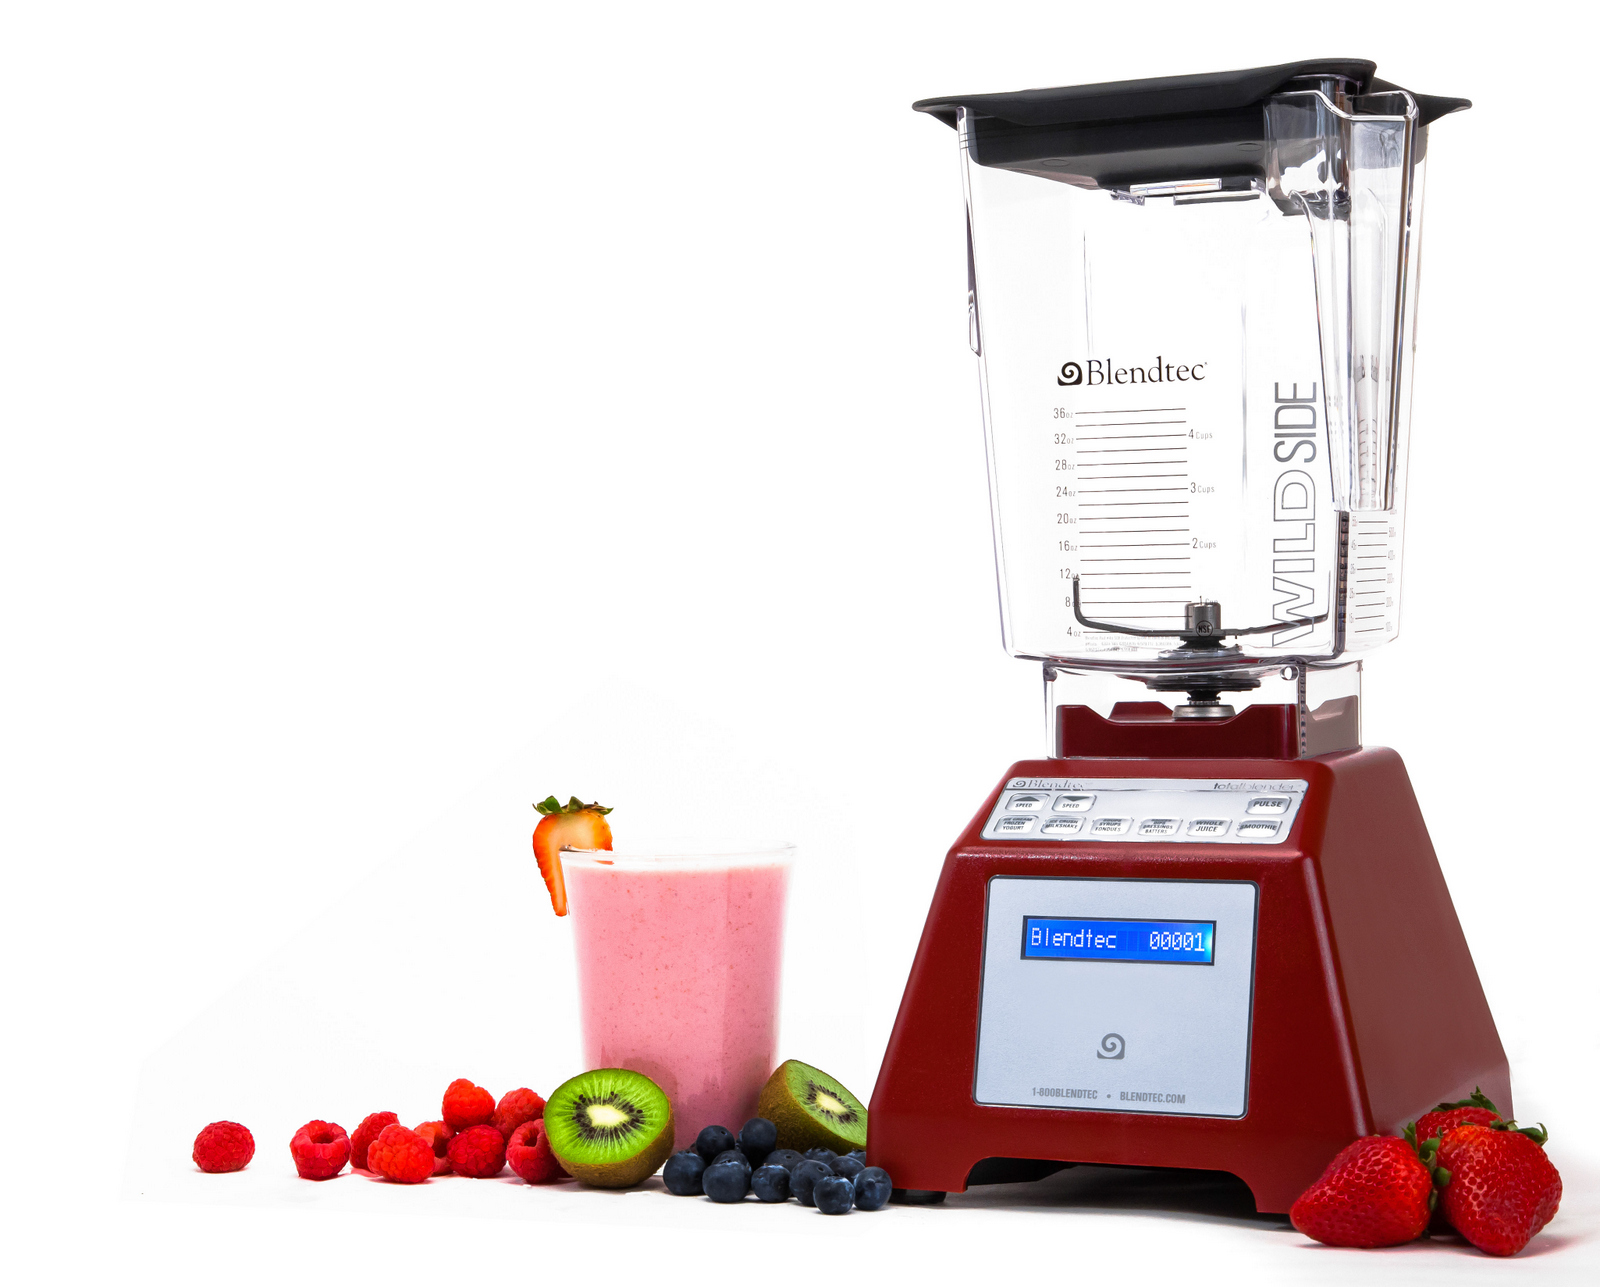 Blendtec has delivered dozens of high-powered blenders to schools across the country.